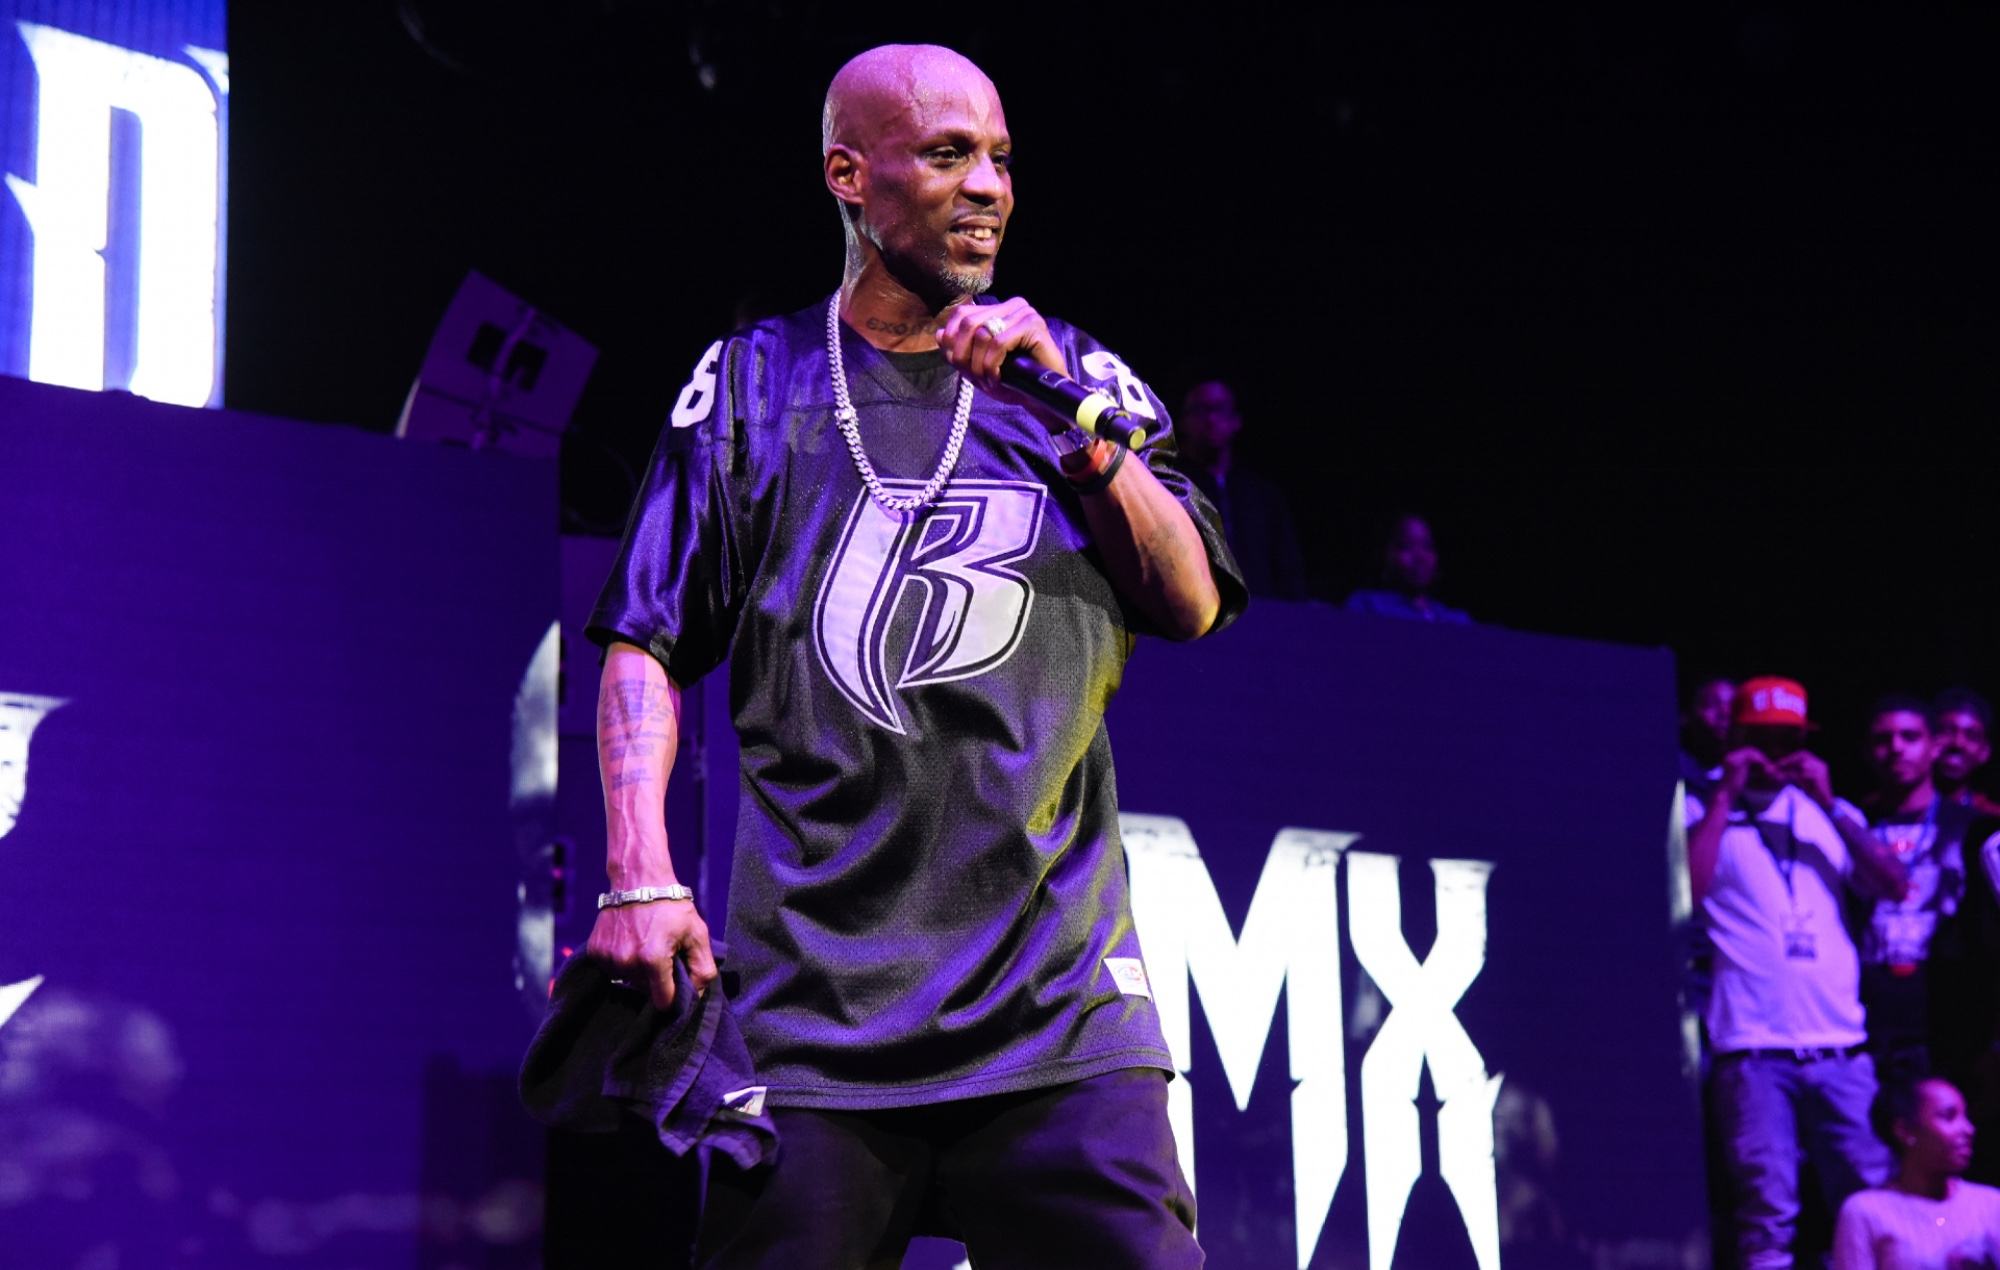 Planned DMX gig being turned into tribute event for late rapper